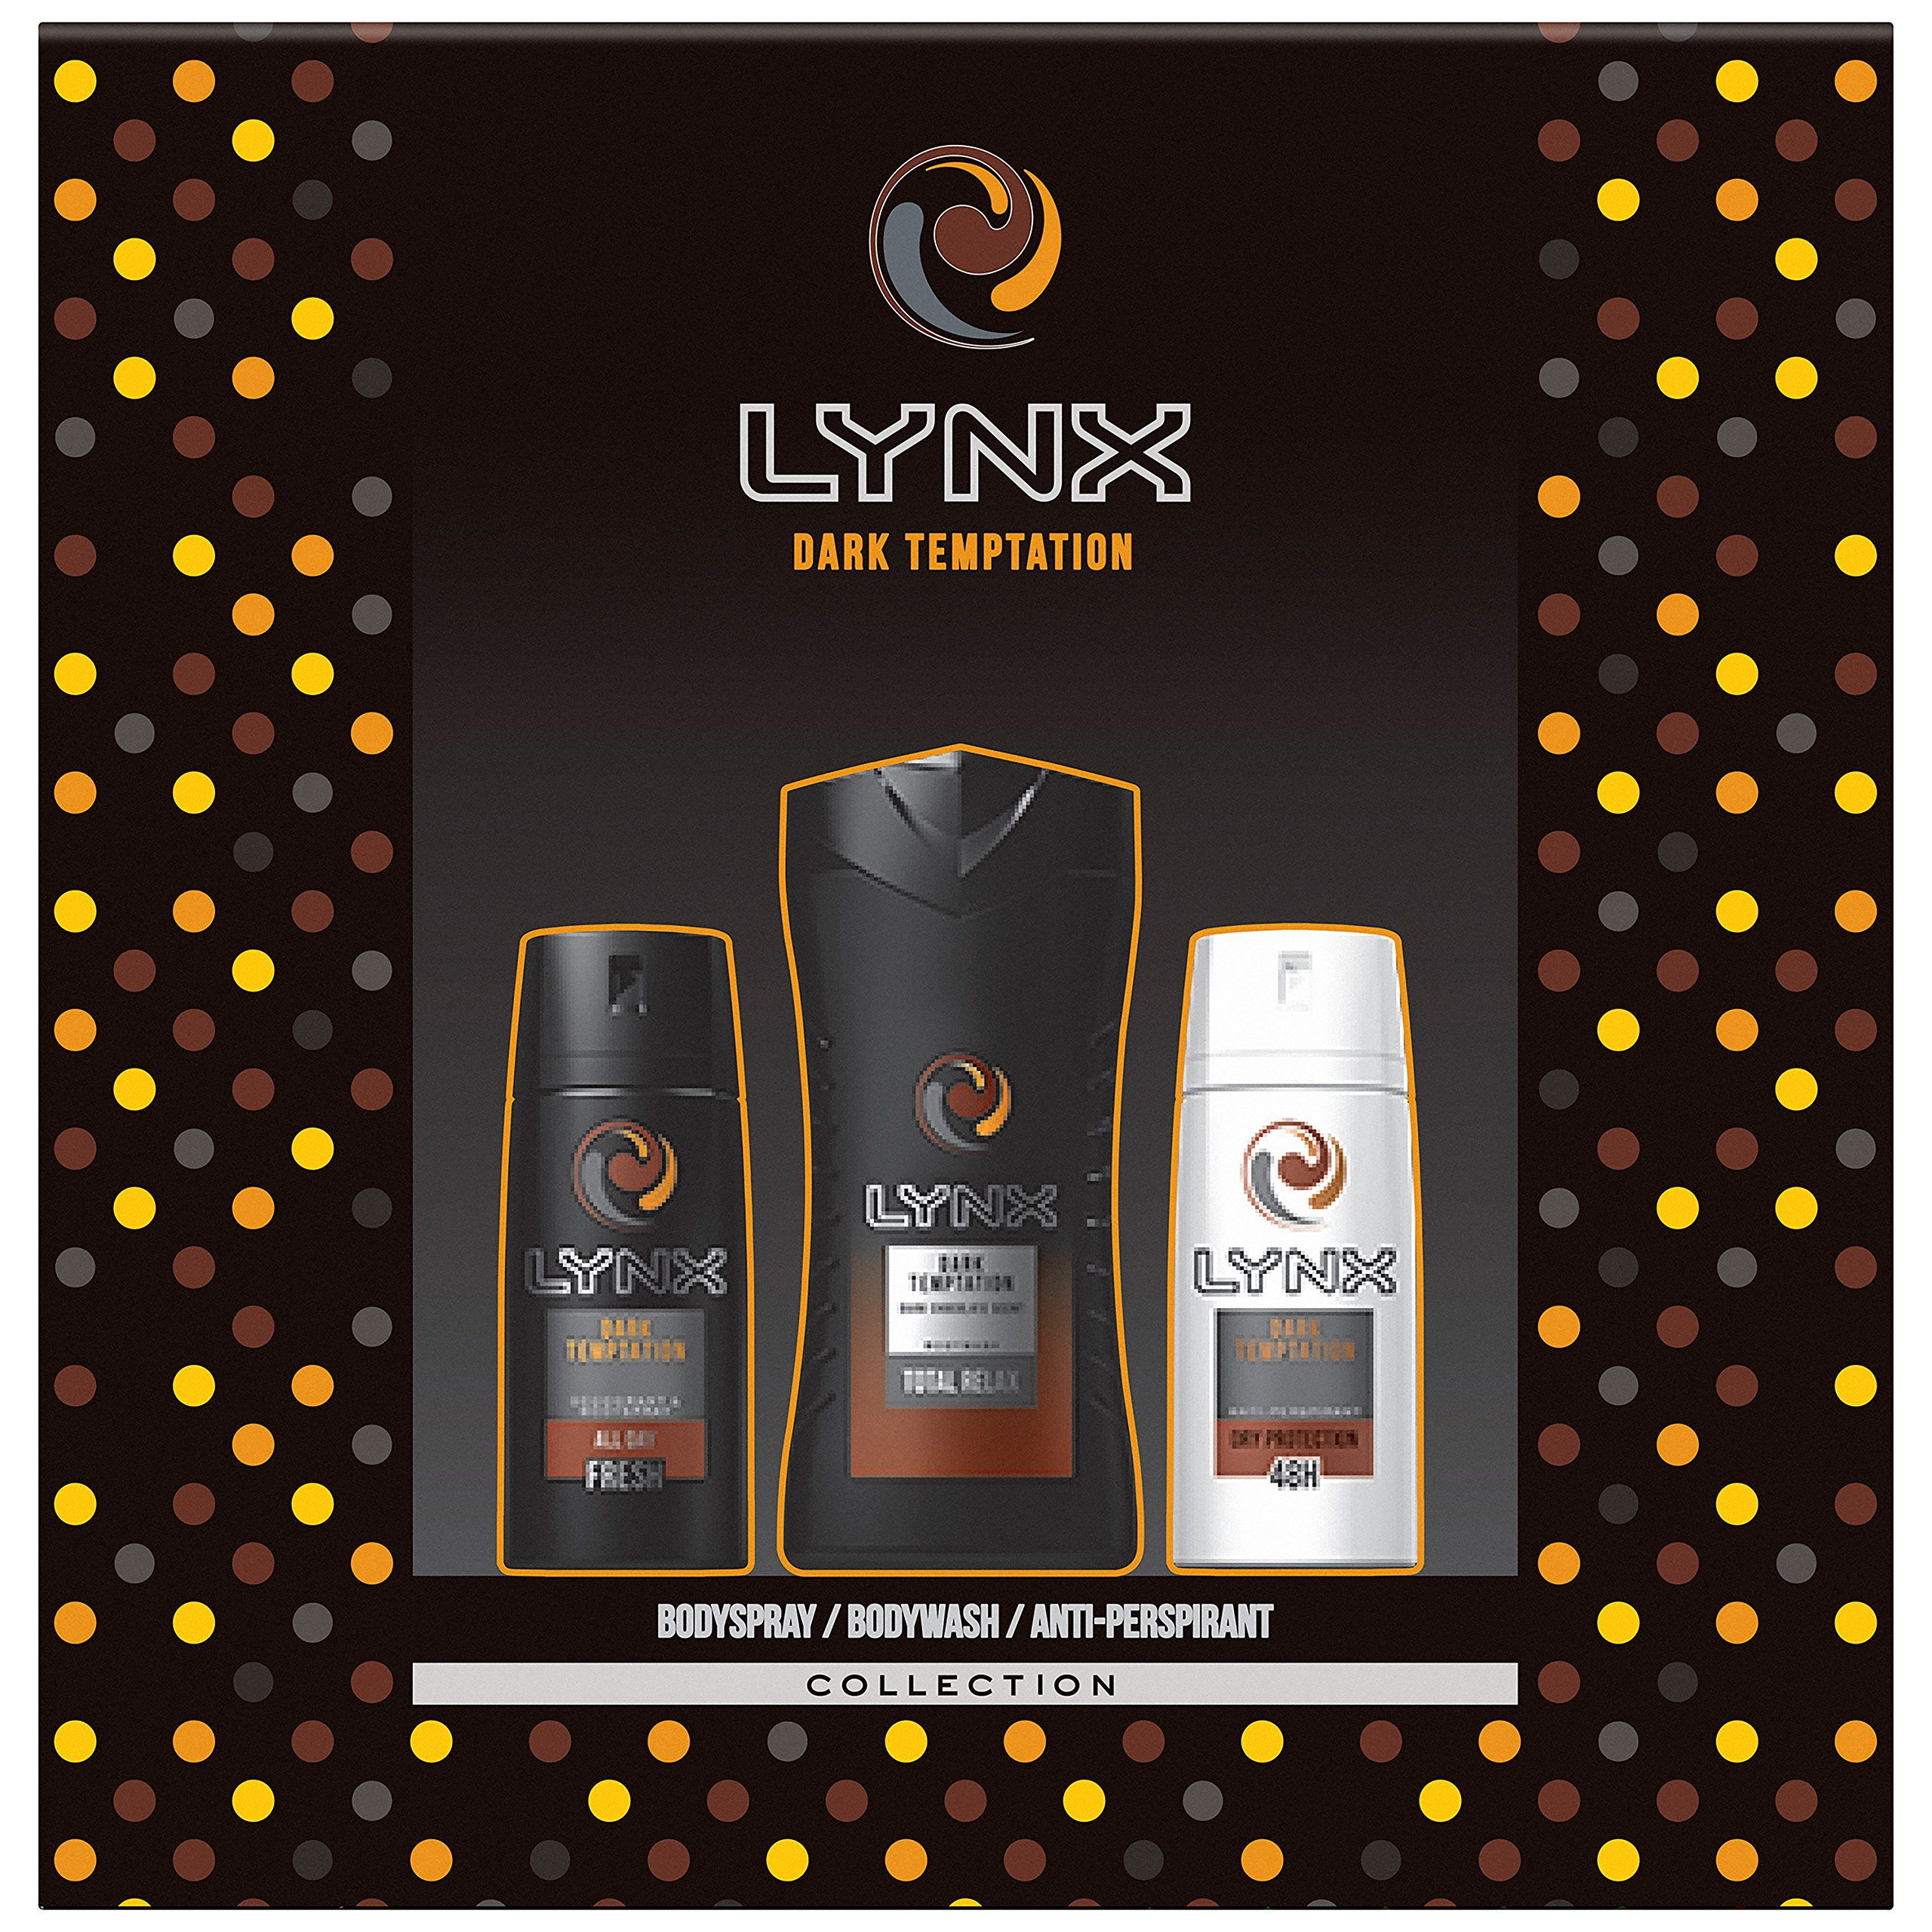 Lynx Dark Temptation Trio Gift Set for Men, Exclusive To Amazon 8710522342596